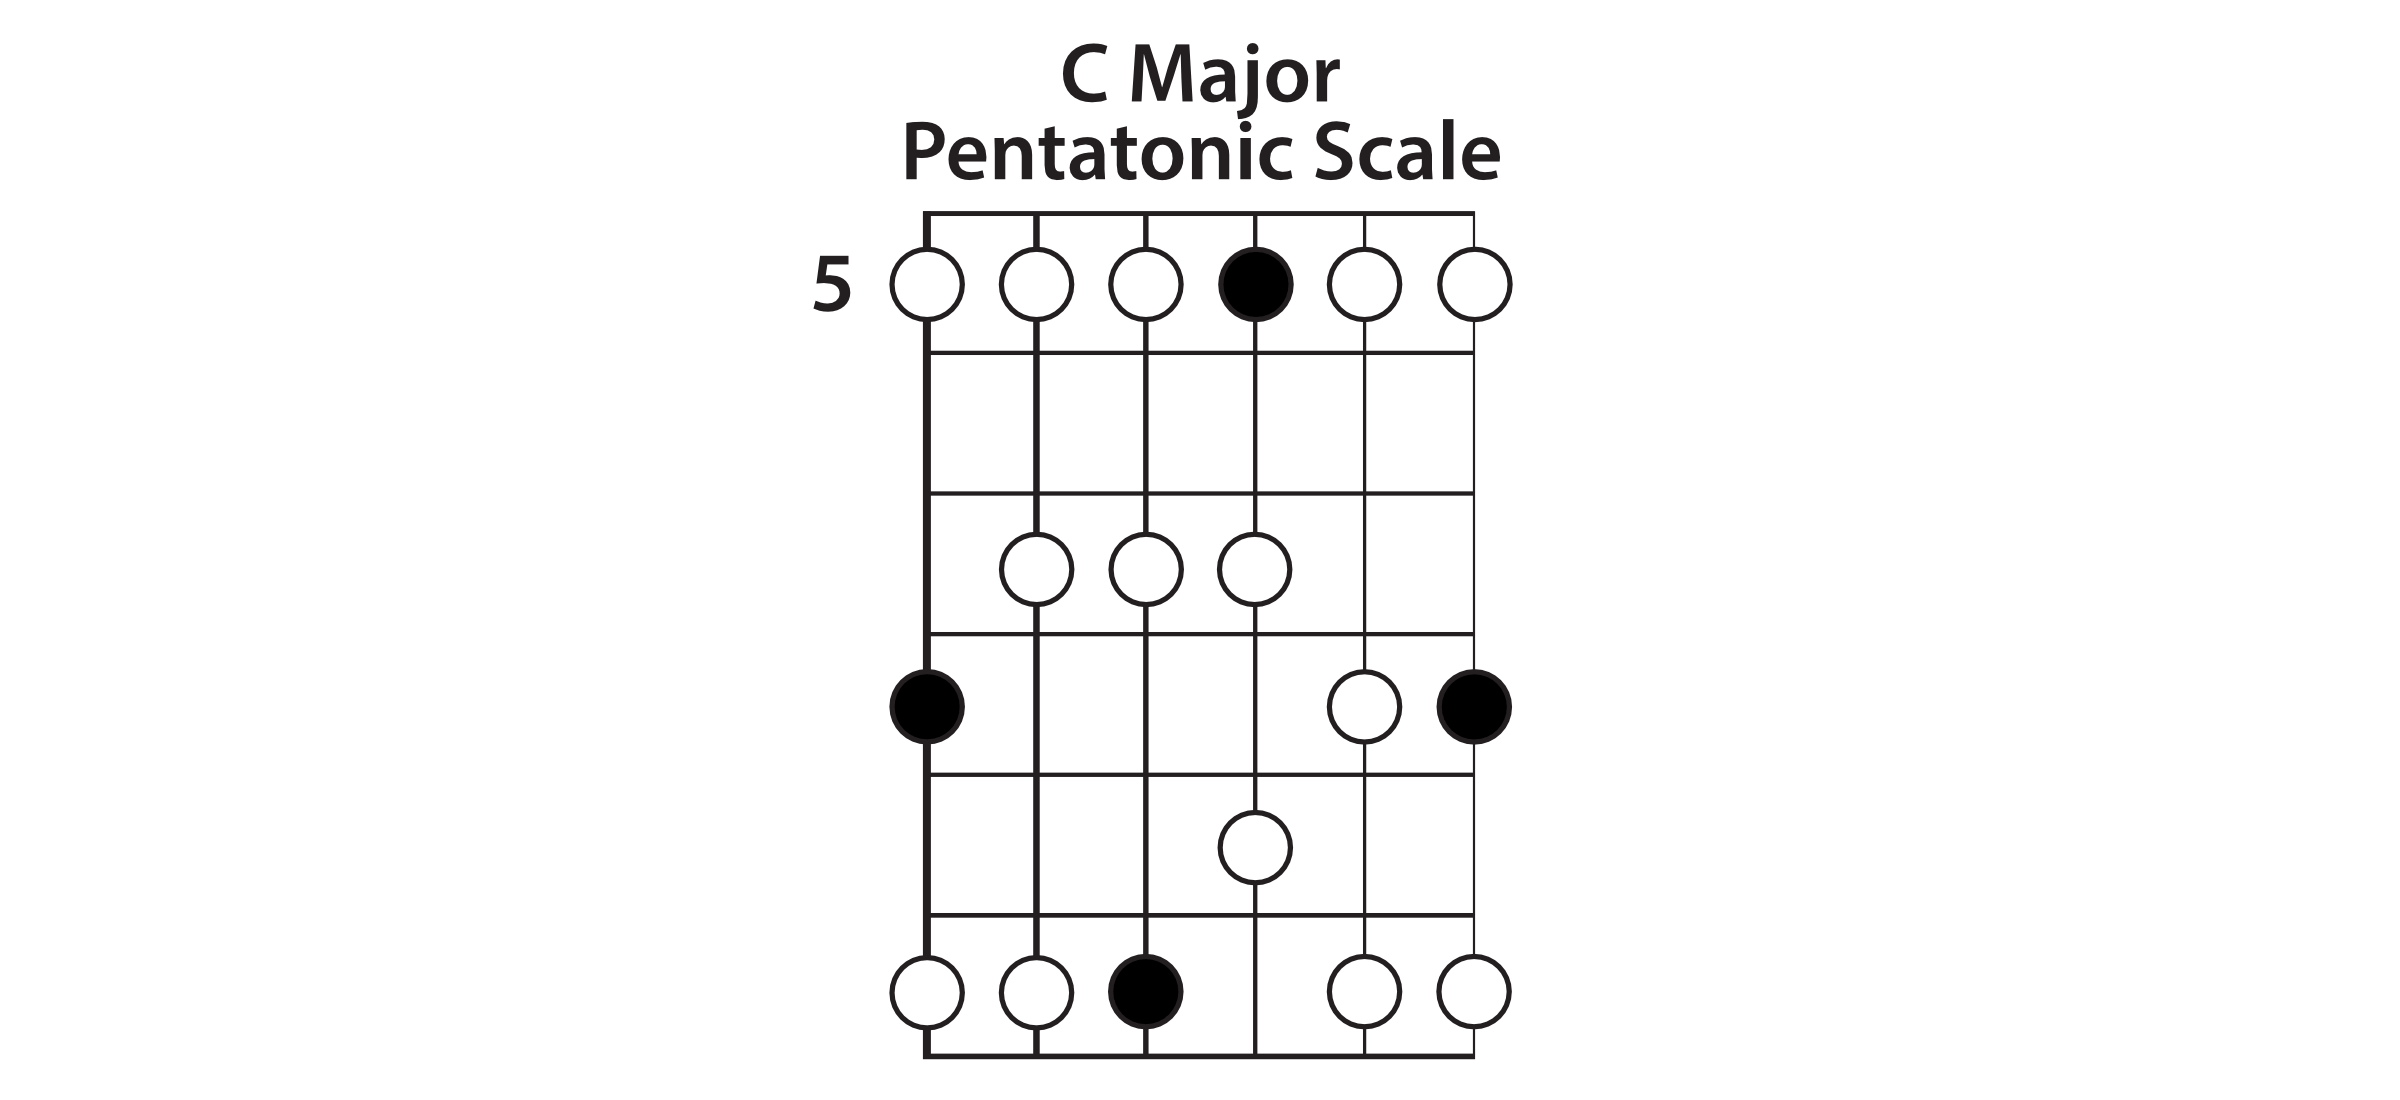 Extended C Major Pentatonic Scale